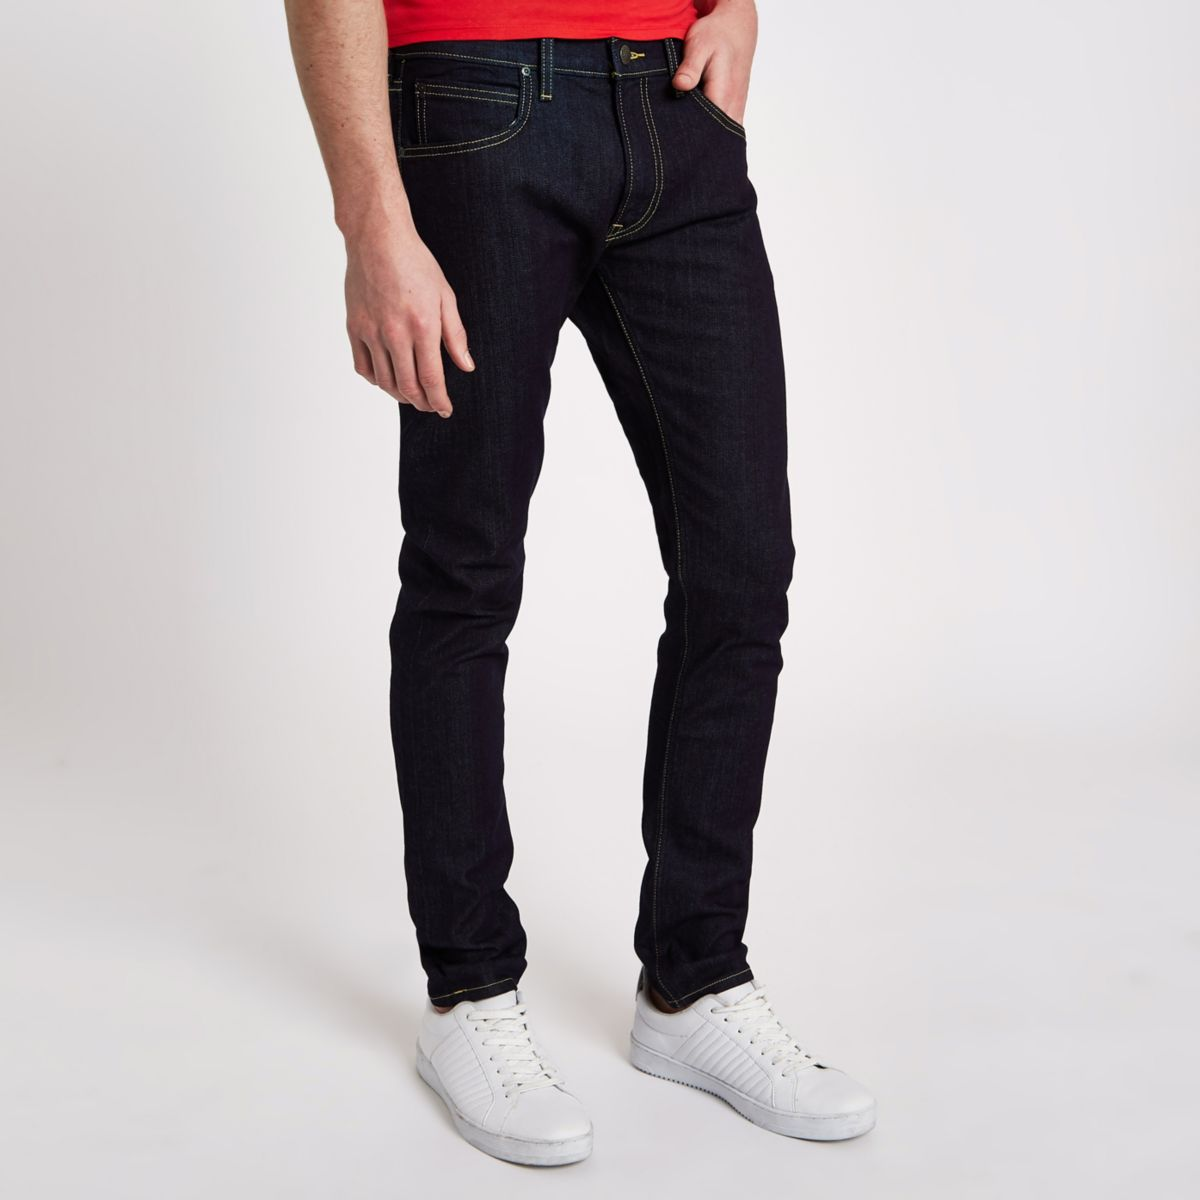 Lee dark blue tapered Luke jeans